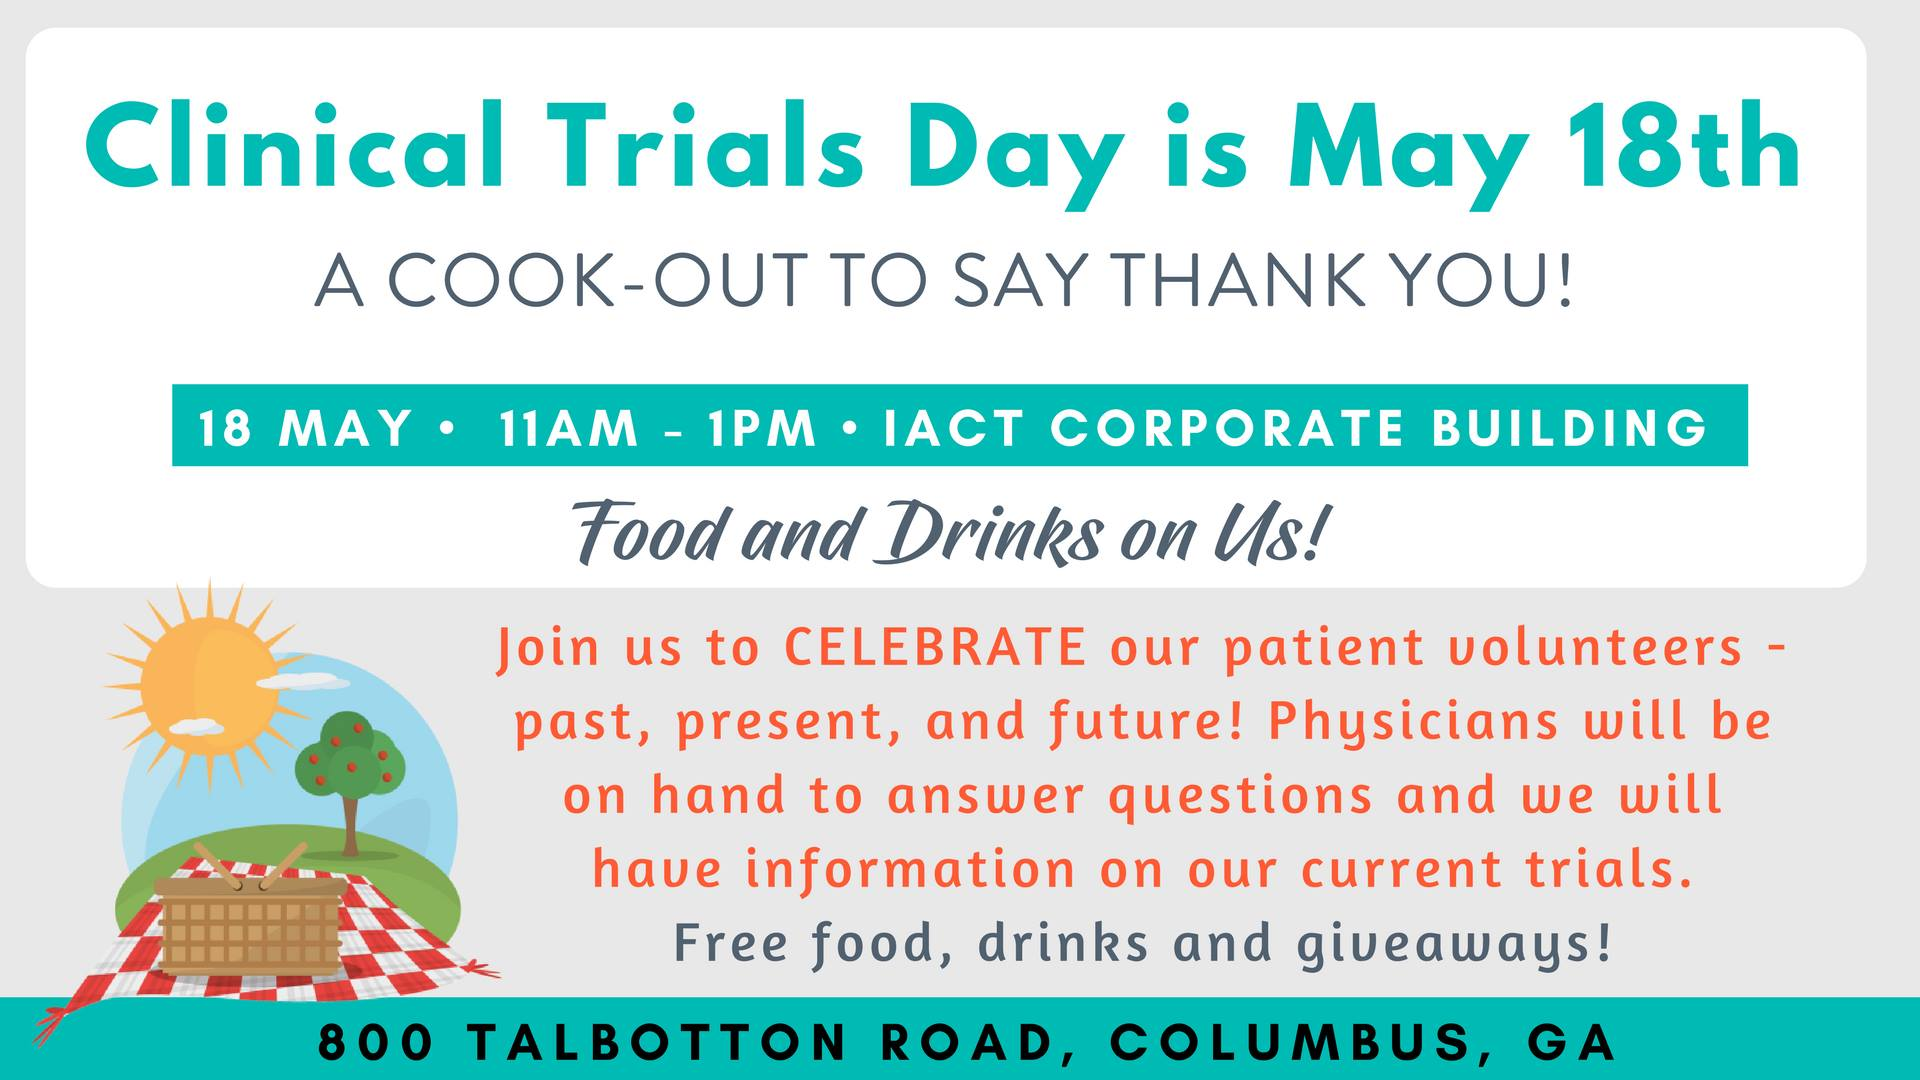 IACT Health Cook-Out